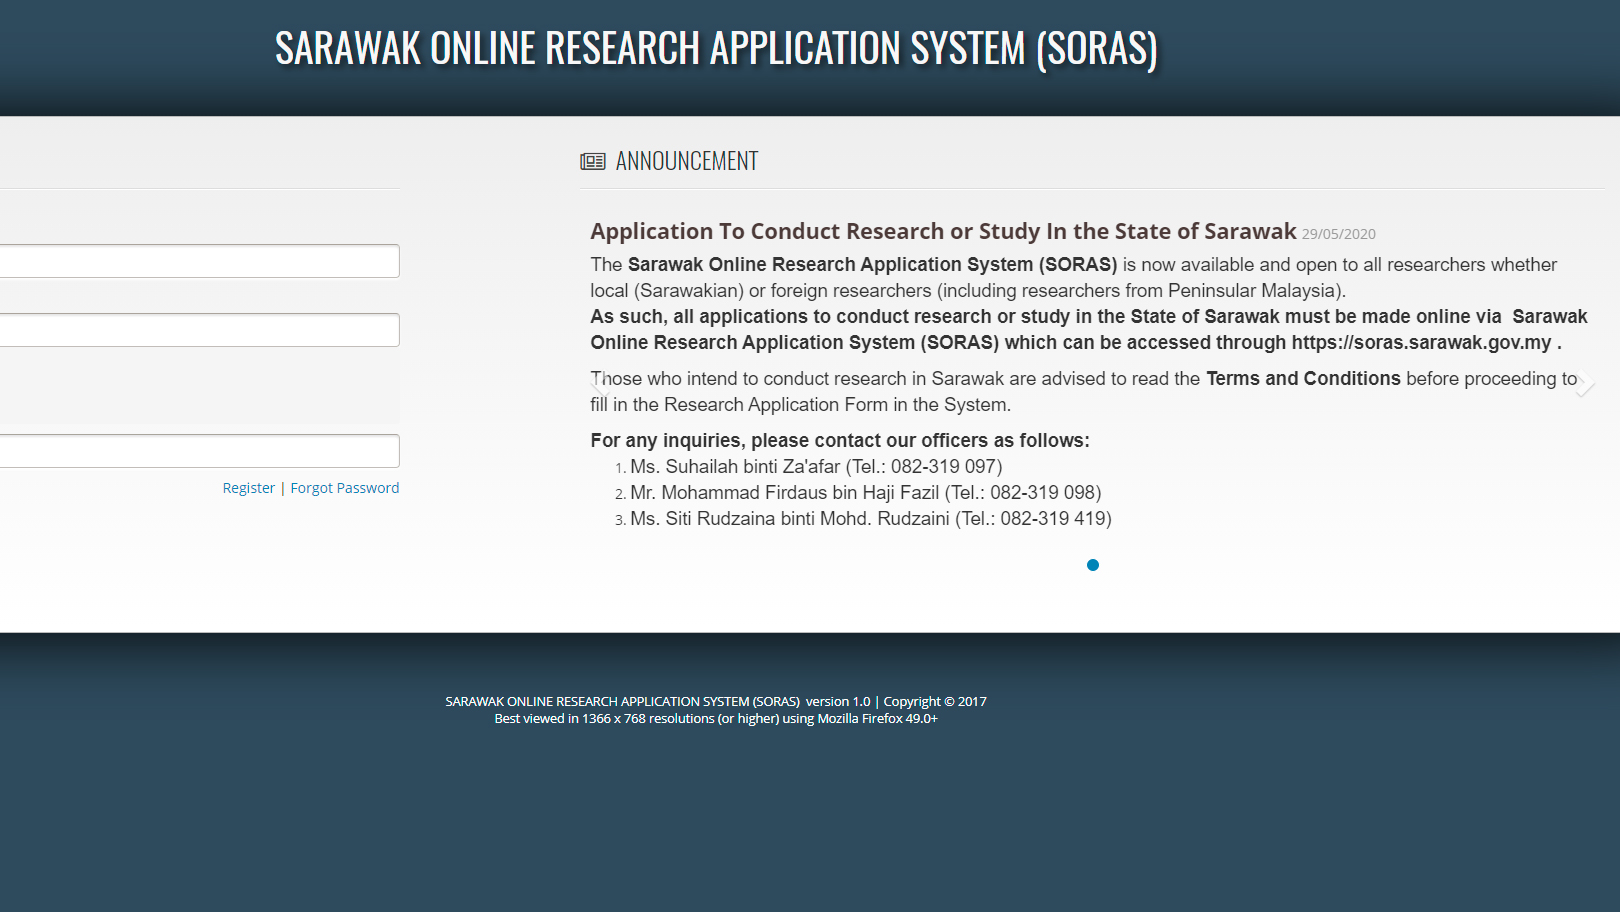 Sarawak Online Research Application System (SORAS)